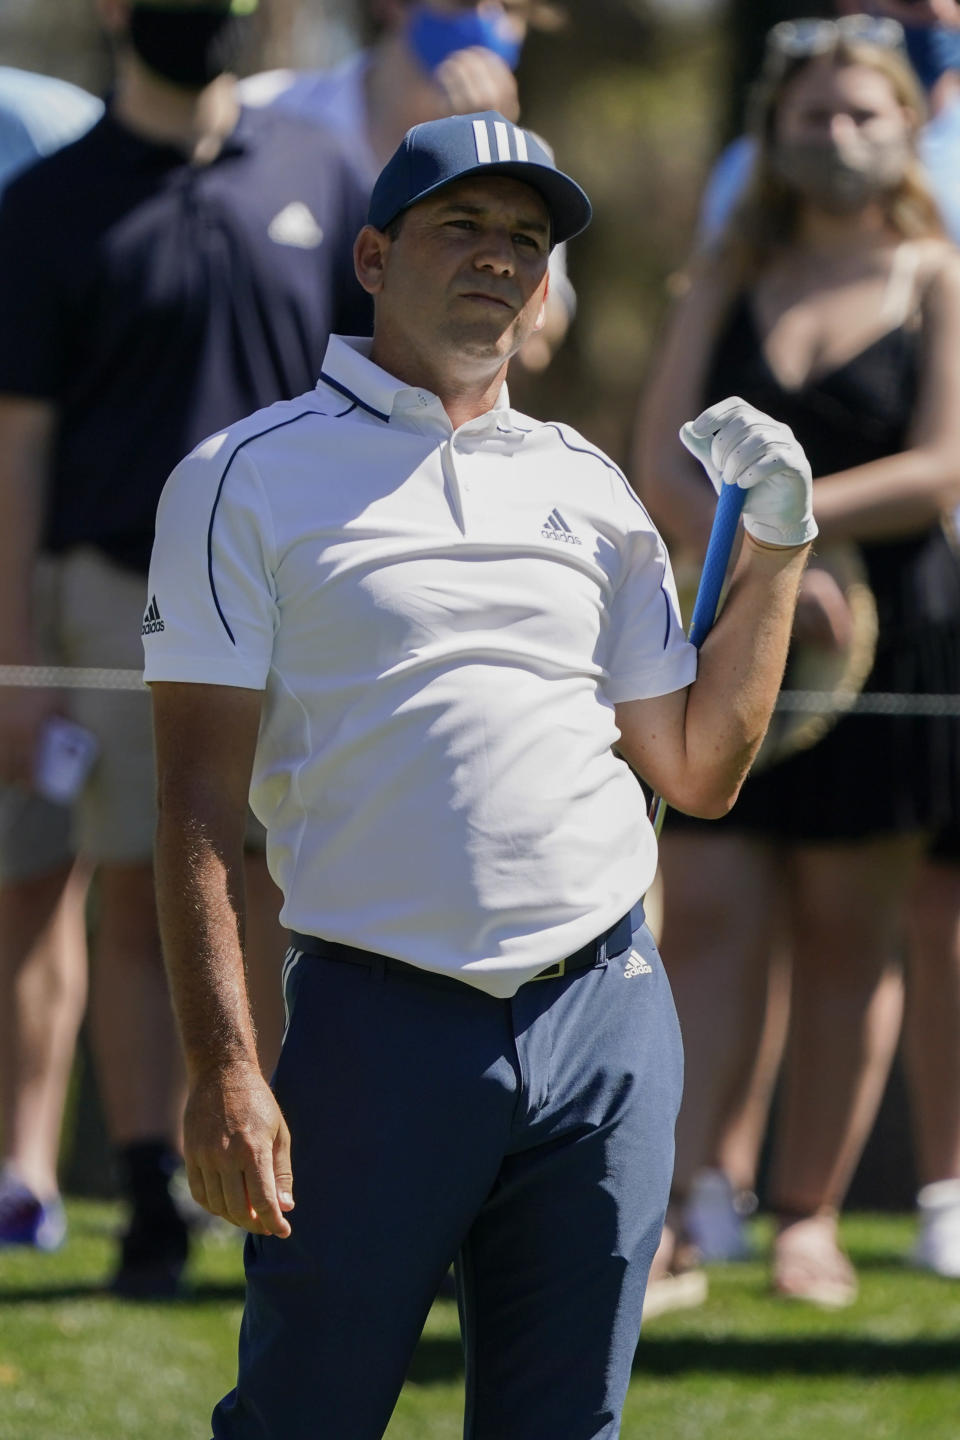 Sergio Garcia, of Spain, watches his tee shot on the sixth hole during the first round of the The Players Championship golf tournament Thursday, March 11, 2021, in Ponte Vedra Beach, Fla. (AP Photo/John Raoux)